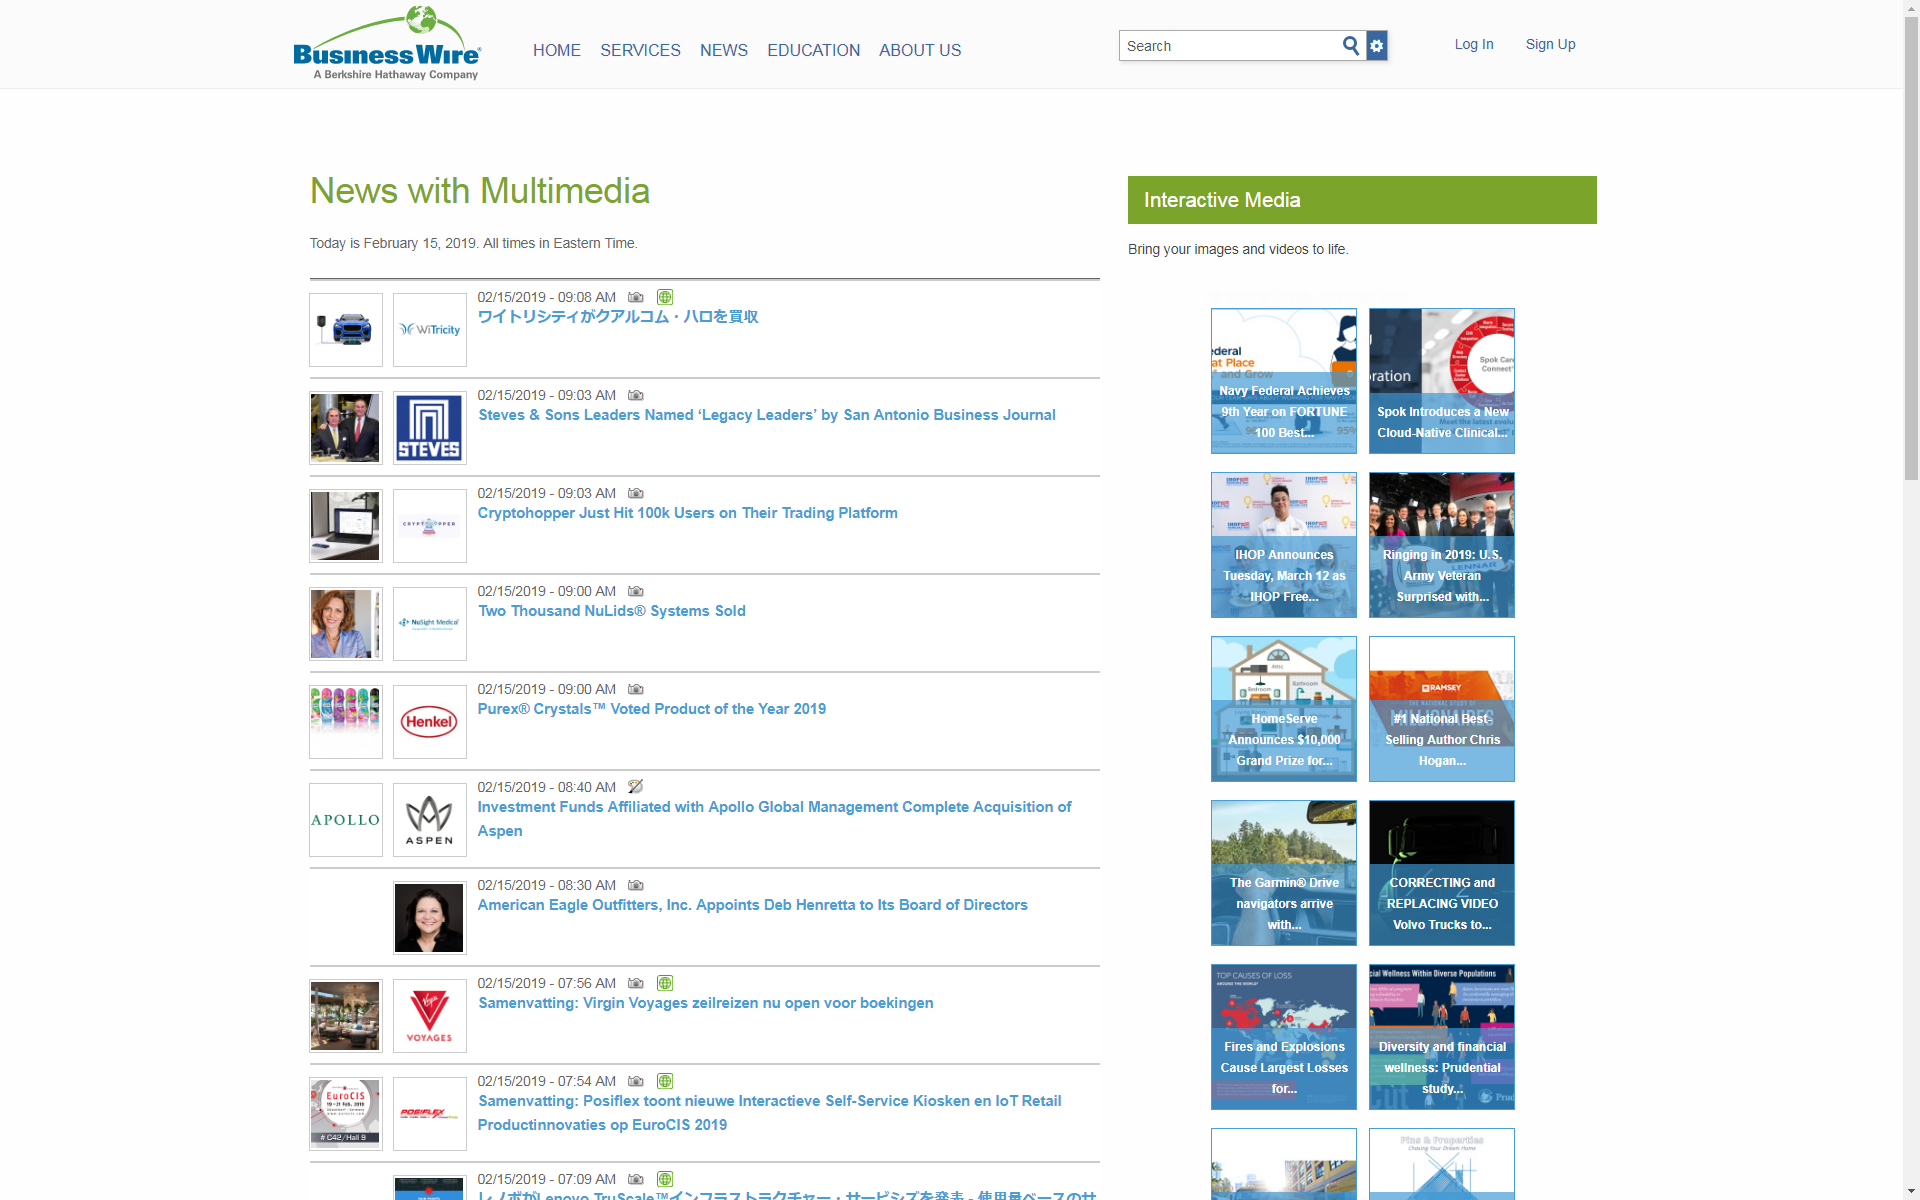 Business Wire Demo - bw-news-page.png